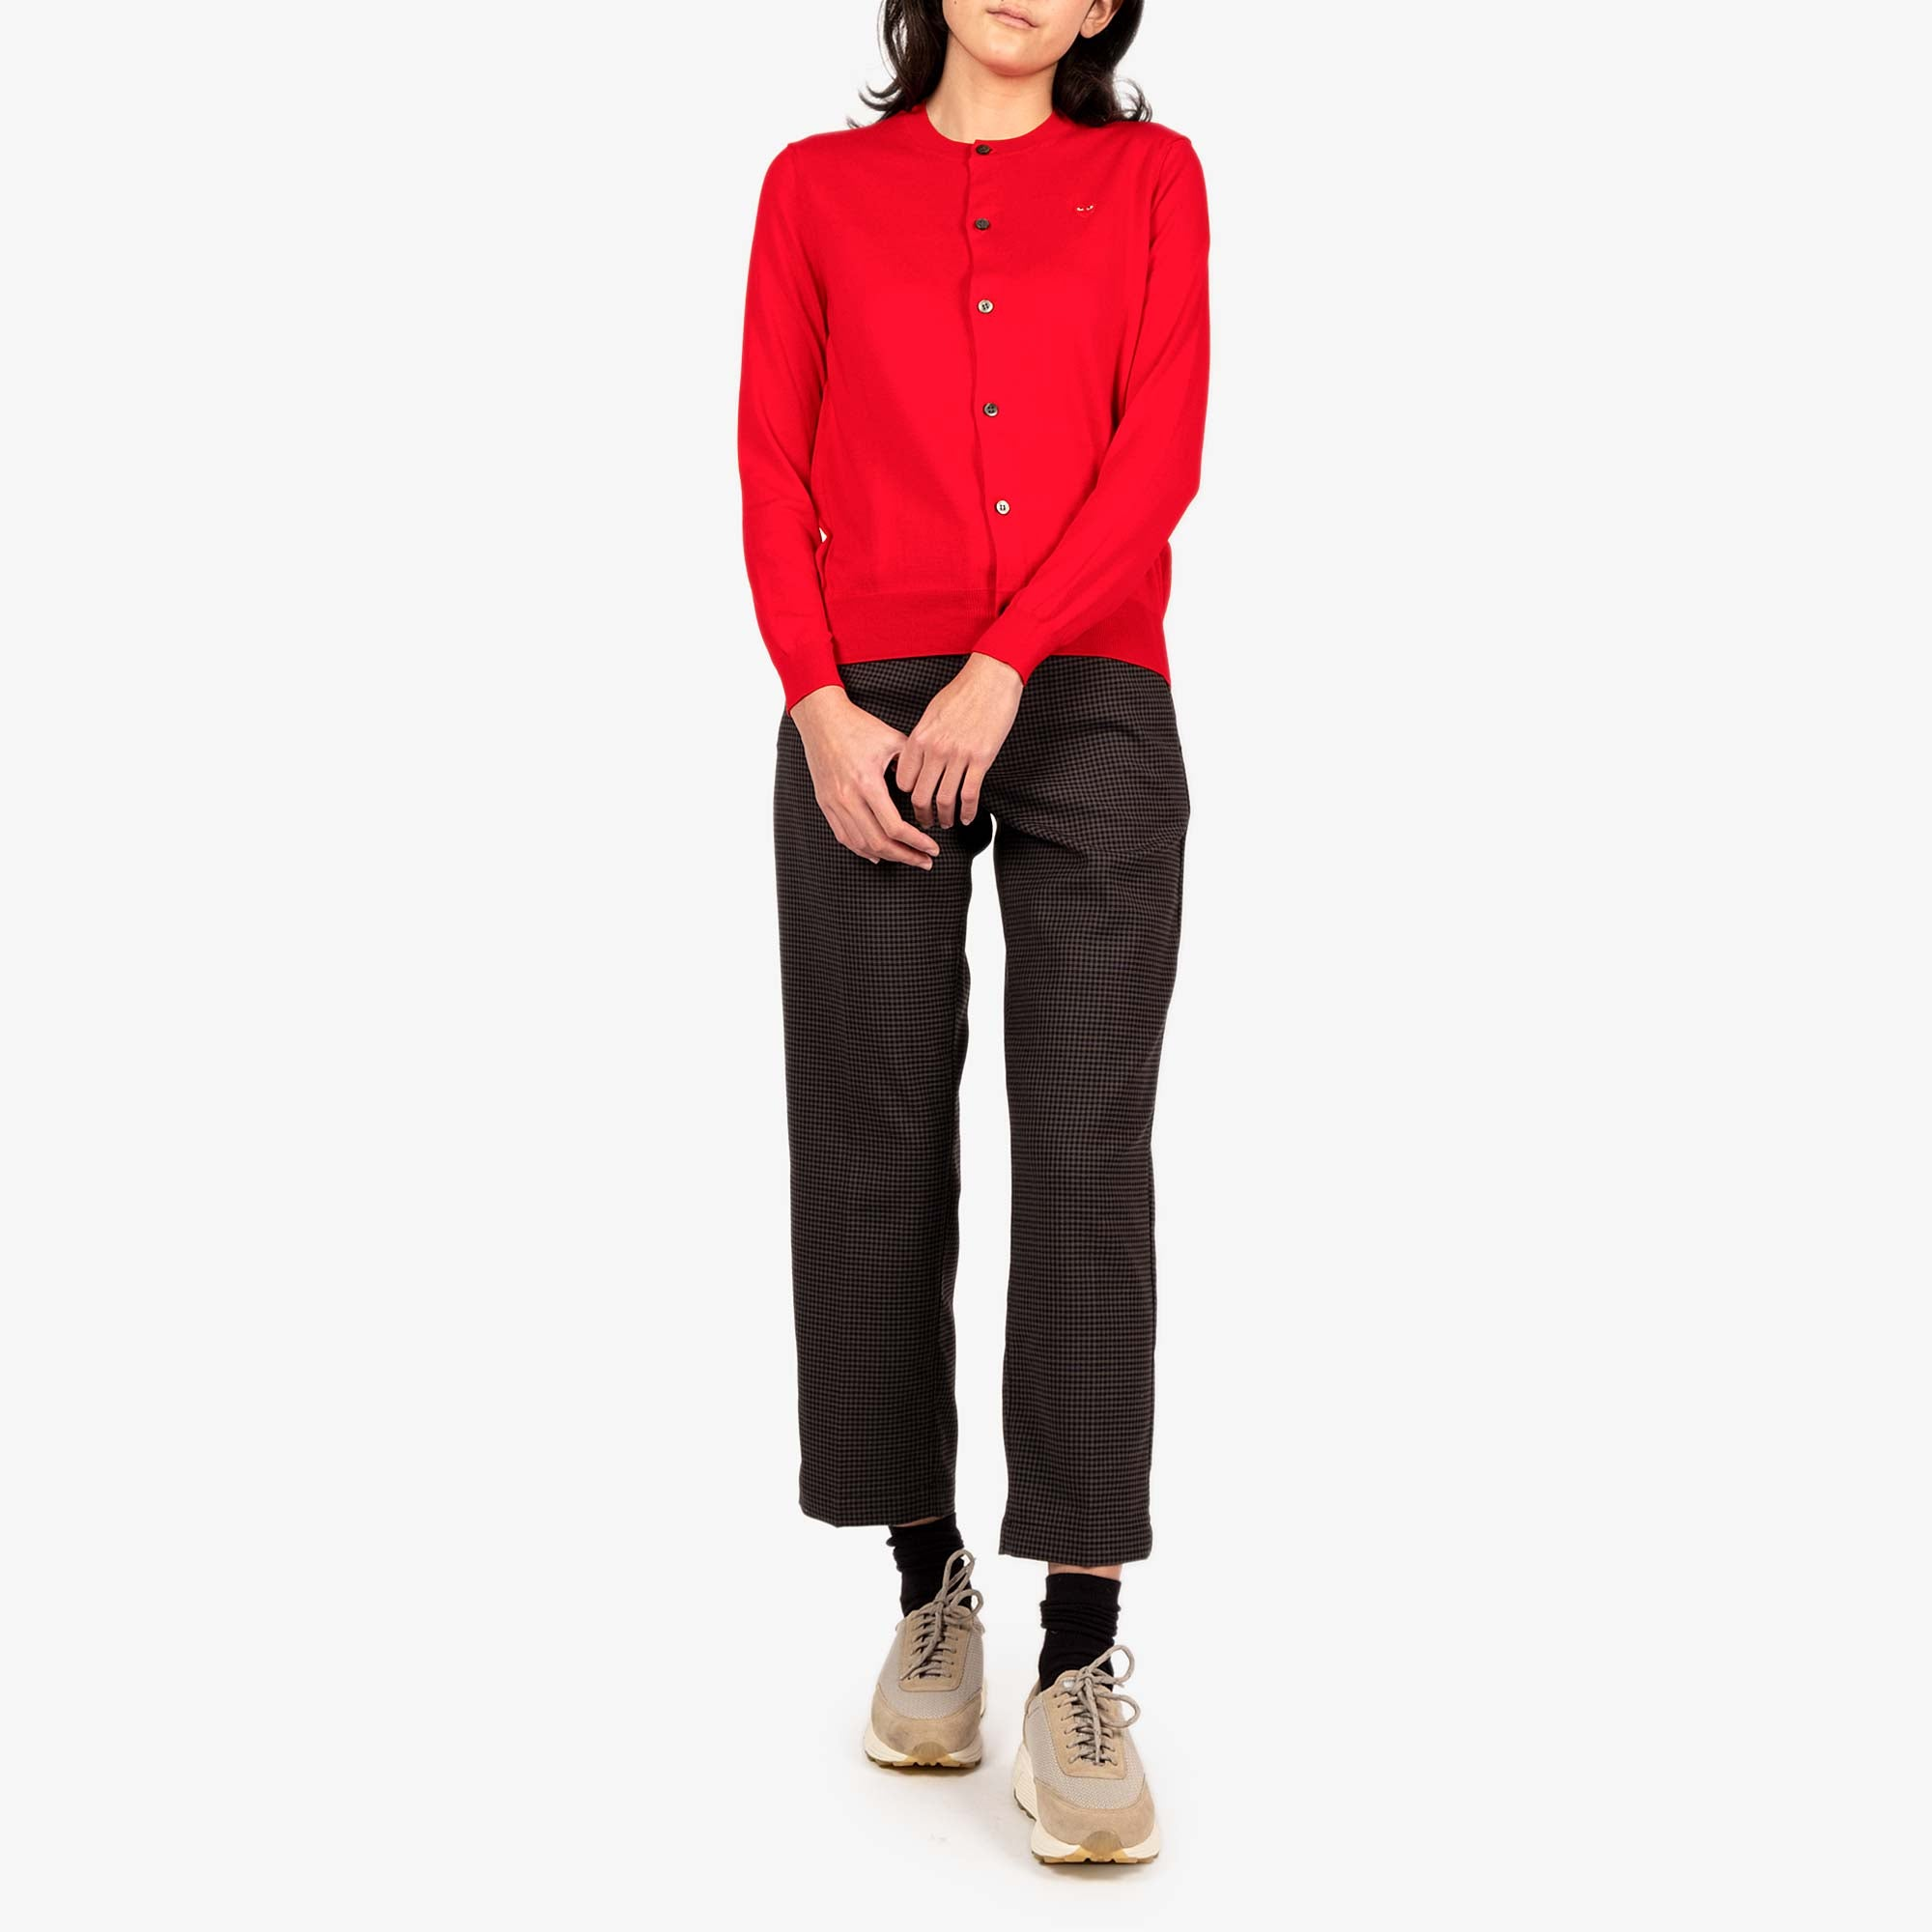 Comme des Garçons - PLAY Small Red Emblem  Womens Cardigan - Red 3